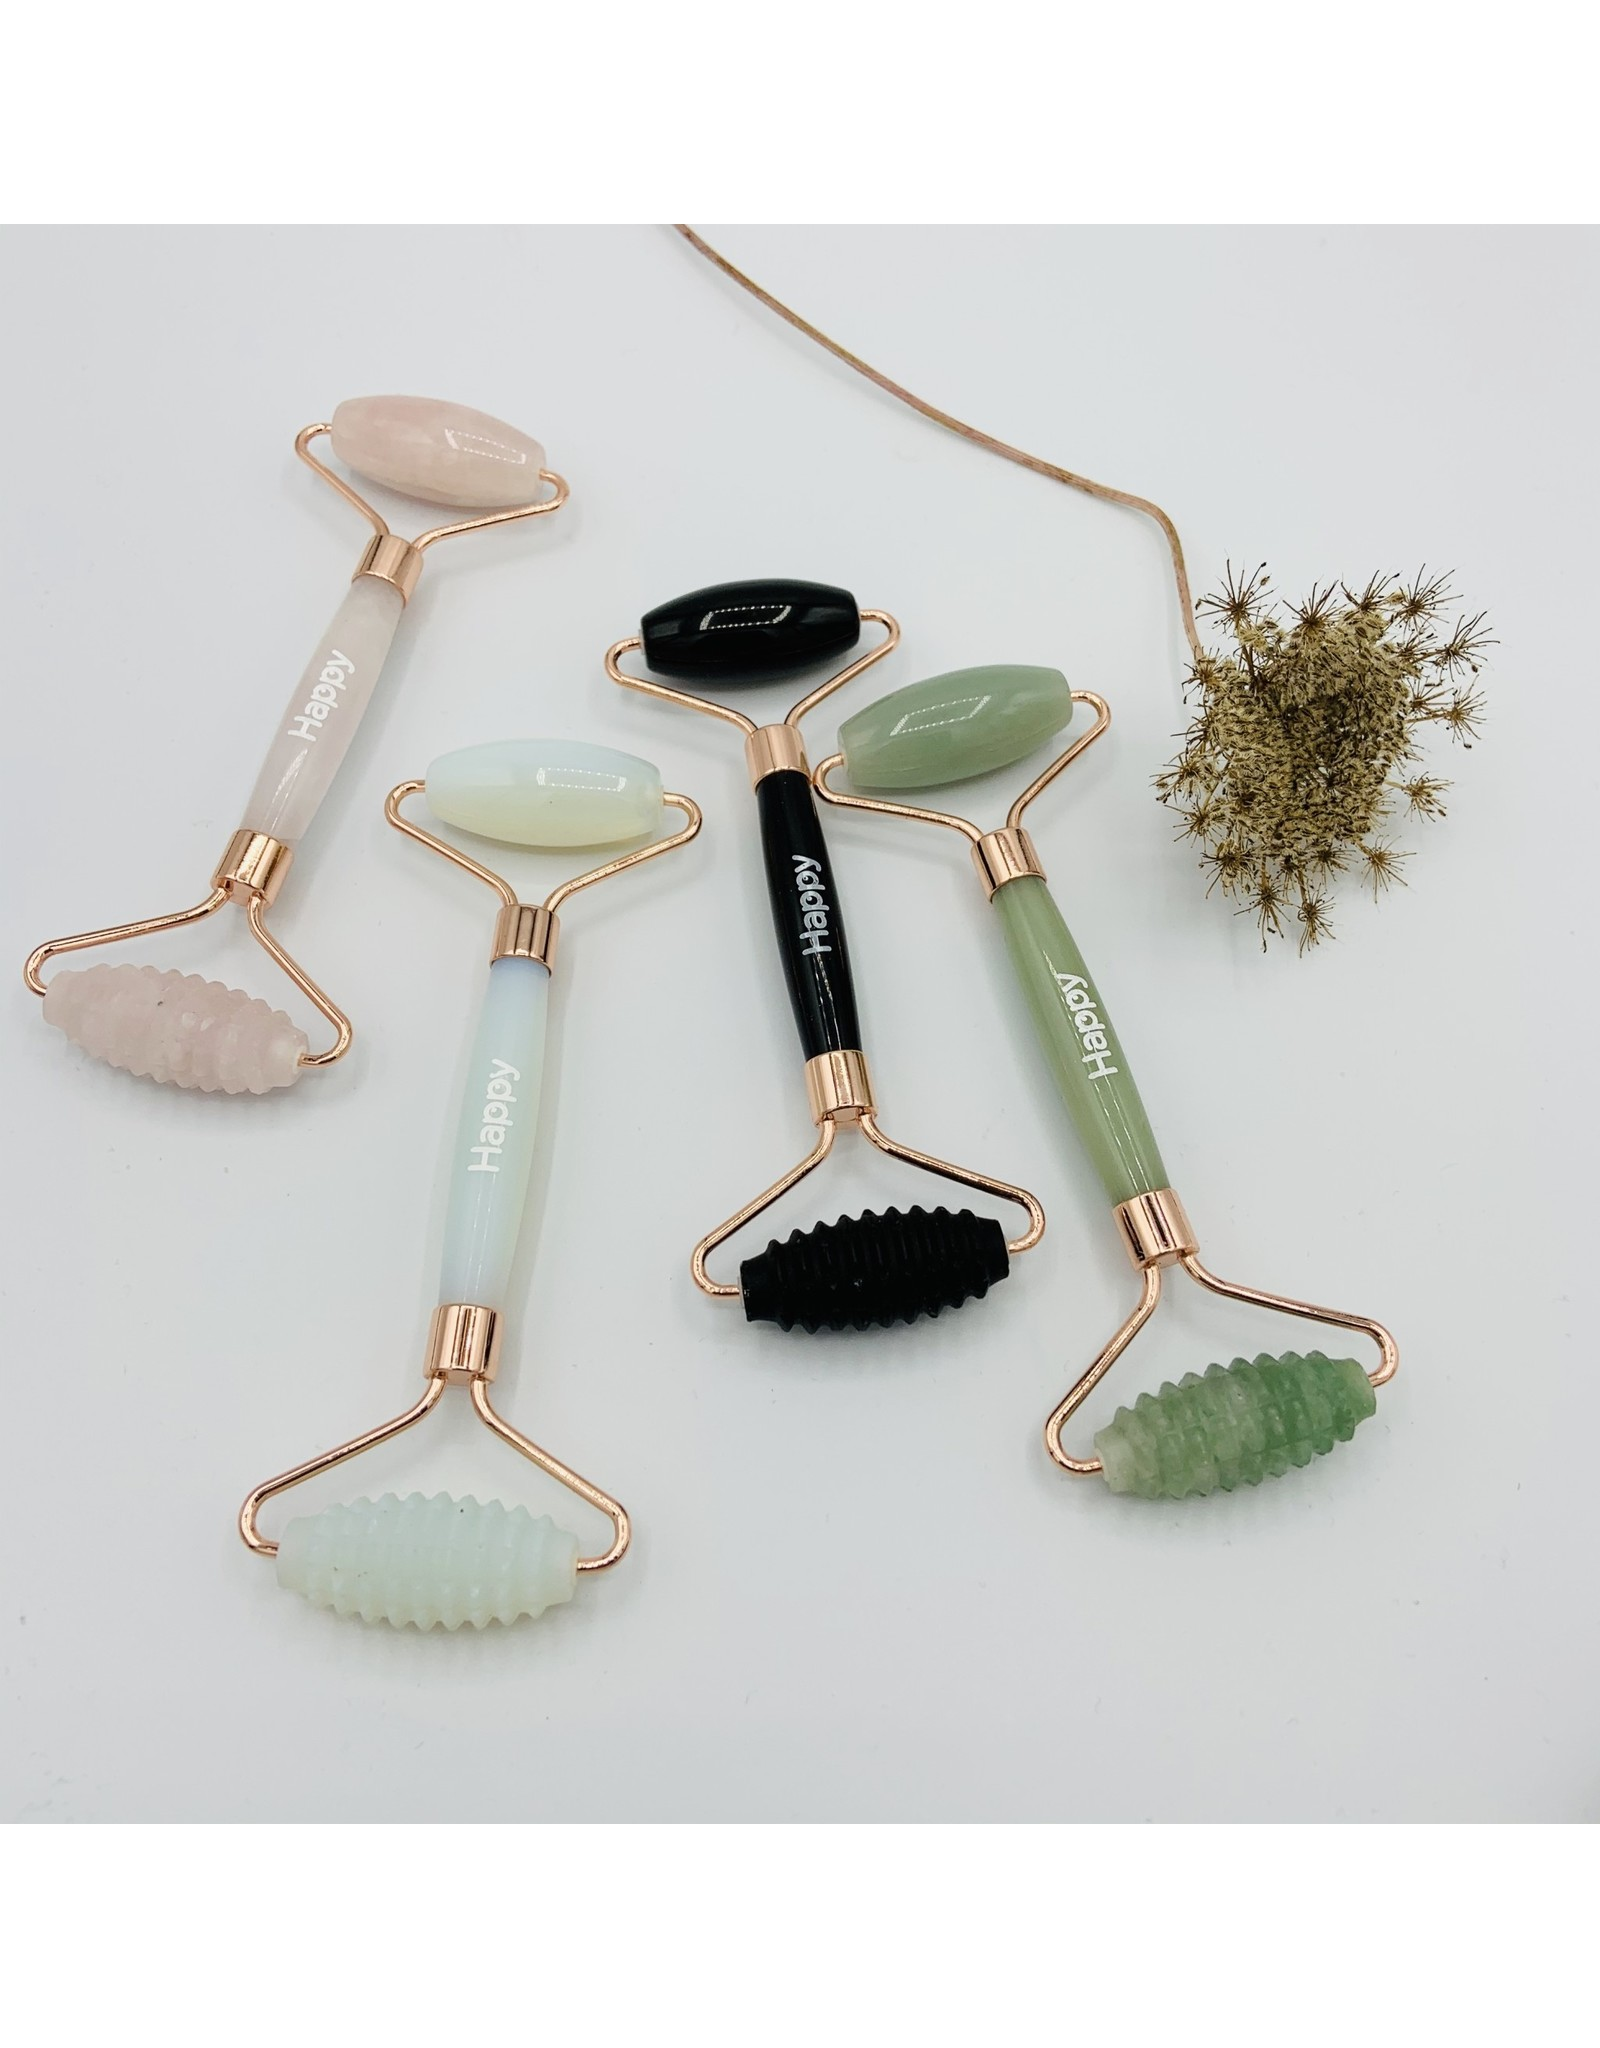 Happy Natural Products Duo Texture Facial Massage Roller